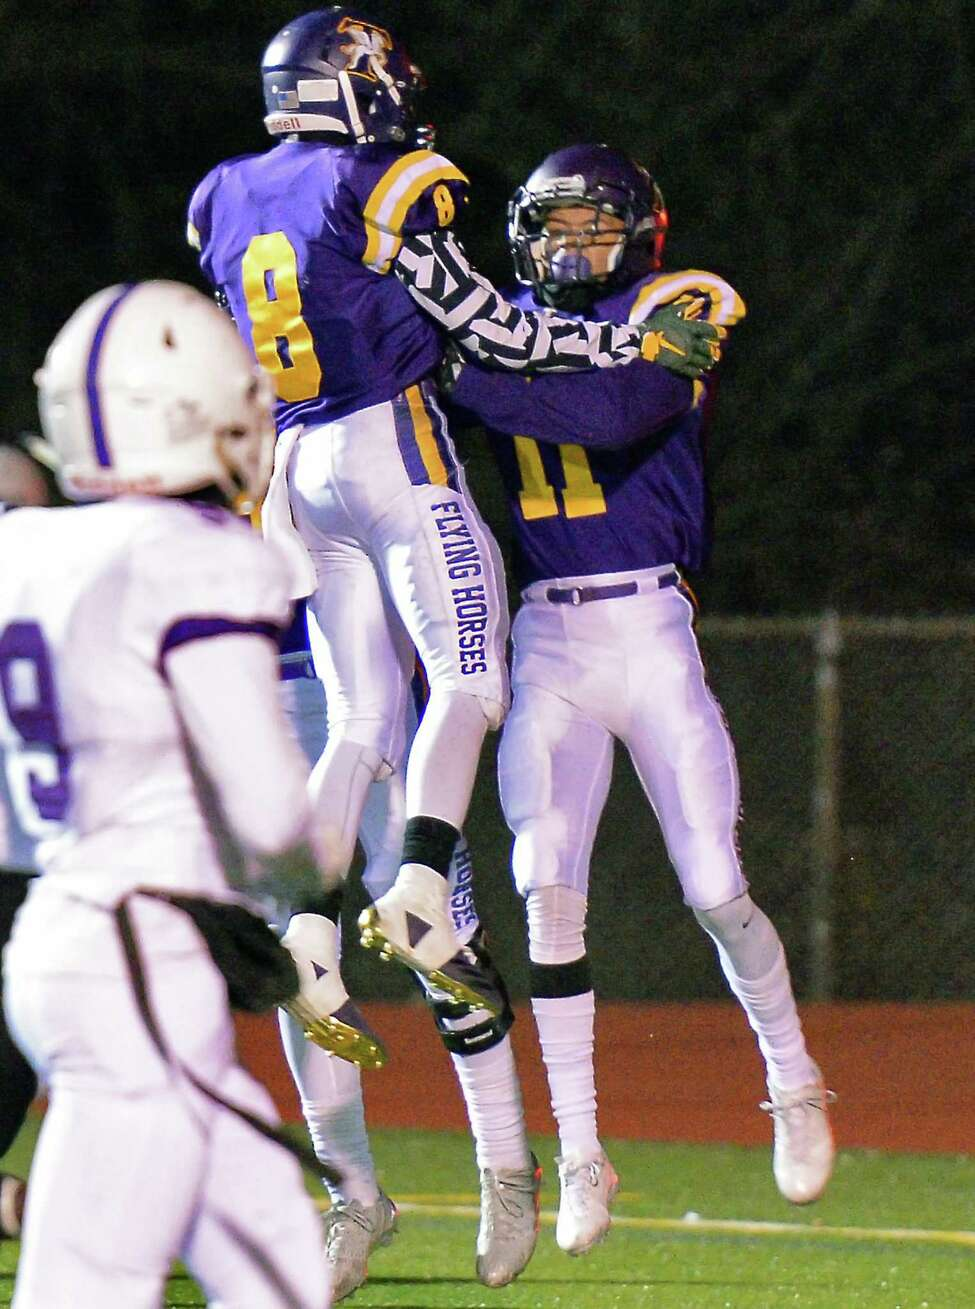 Troy's #11 Isaiah Burdette, right, is congratulated by team mate Dev Holmes after Burdette's touchdown pass completion during their Class AA quarterfinal game against New Rochelle Friday Nov. 10, 2017 in East Greenbush, NY. (John Carl D'Annibale / Times Union)